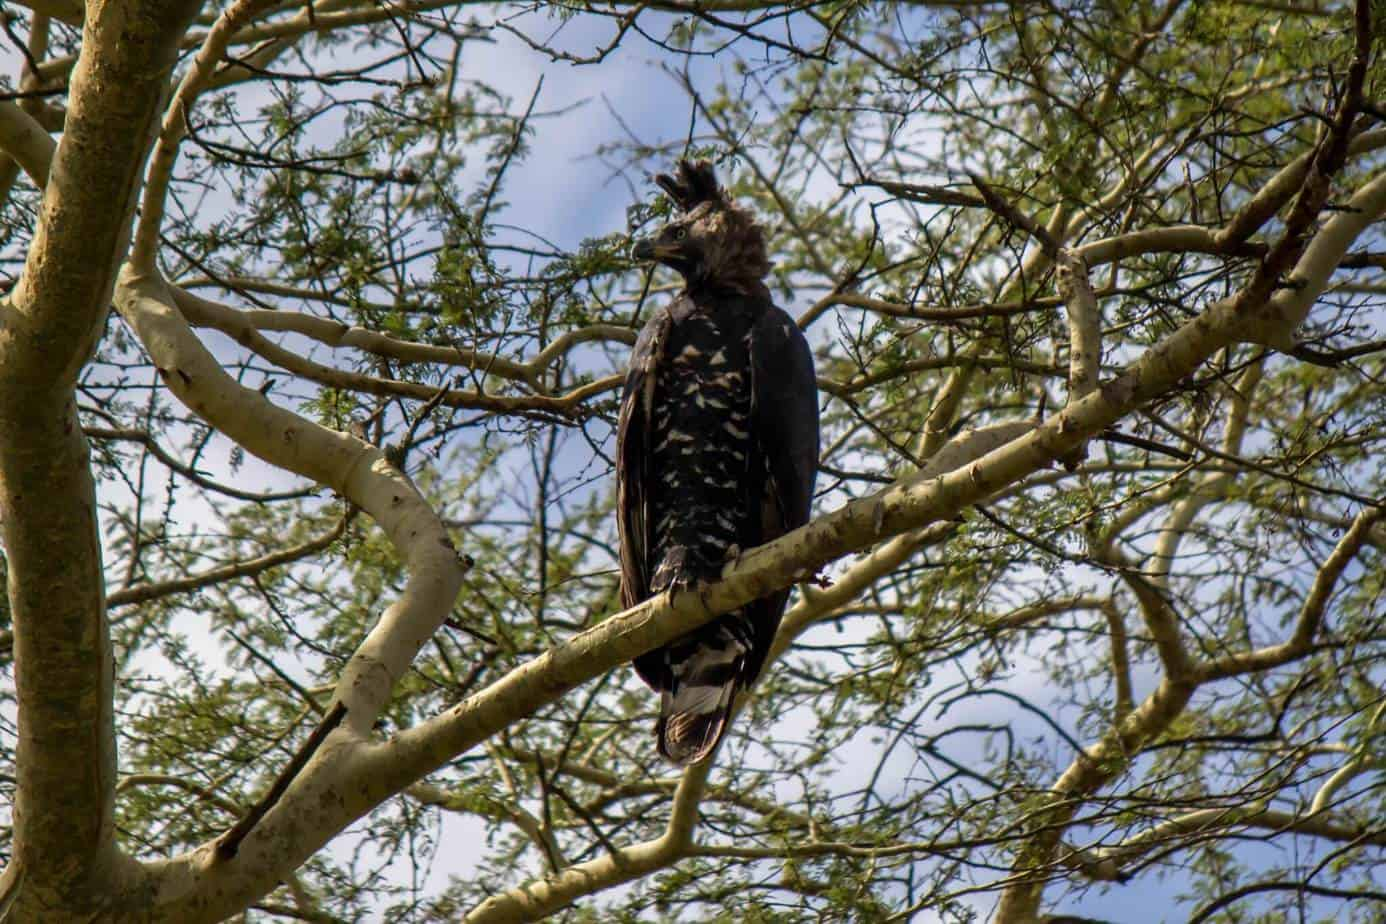 Crowned Eagle @ Ndumo Game Reserve. Photo: Håvard Rosenlund